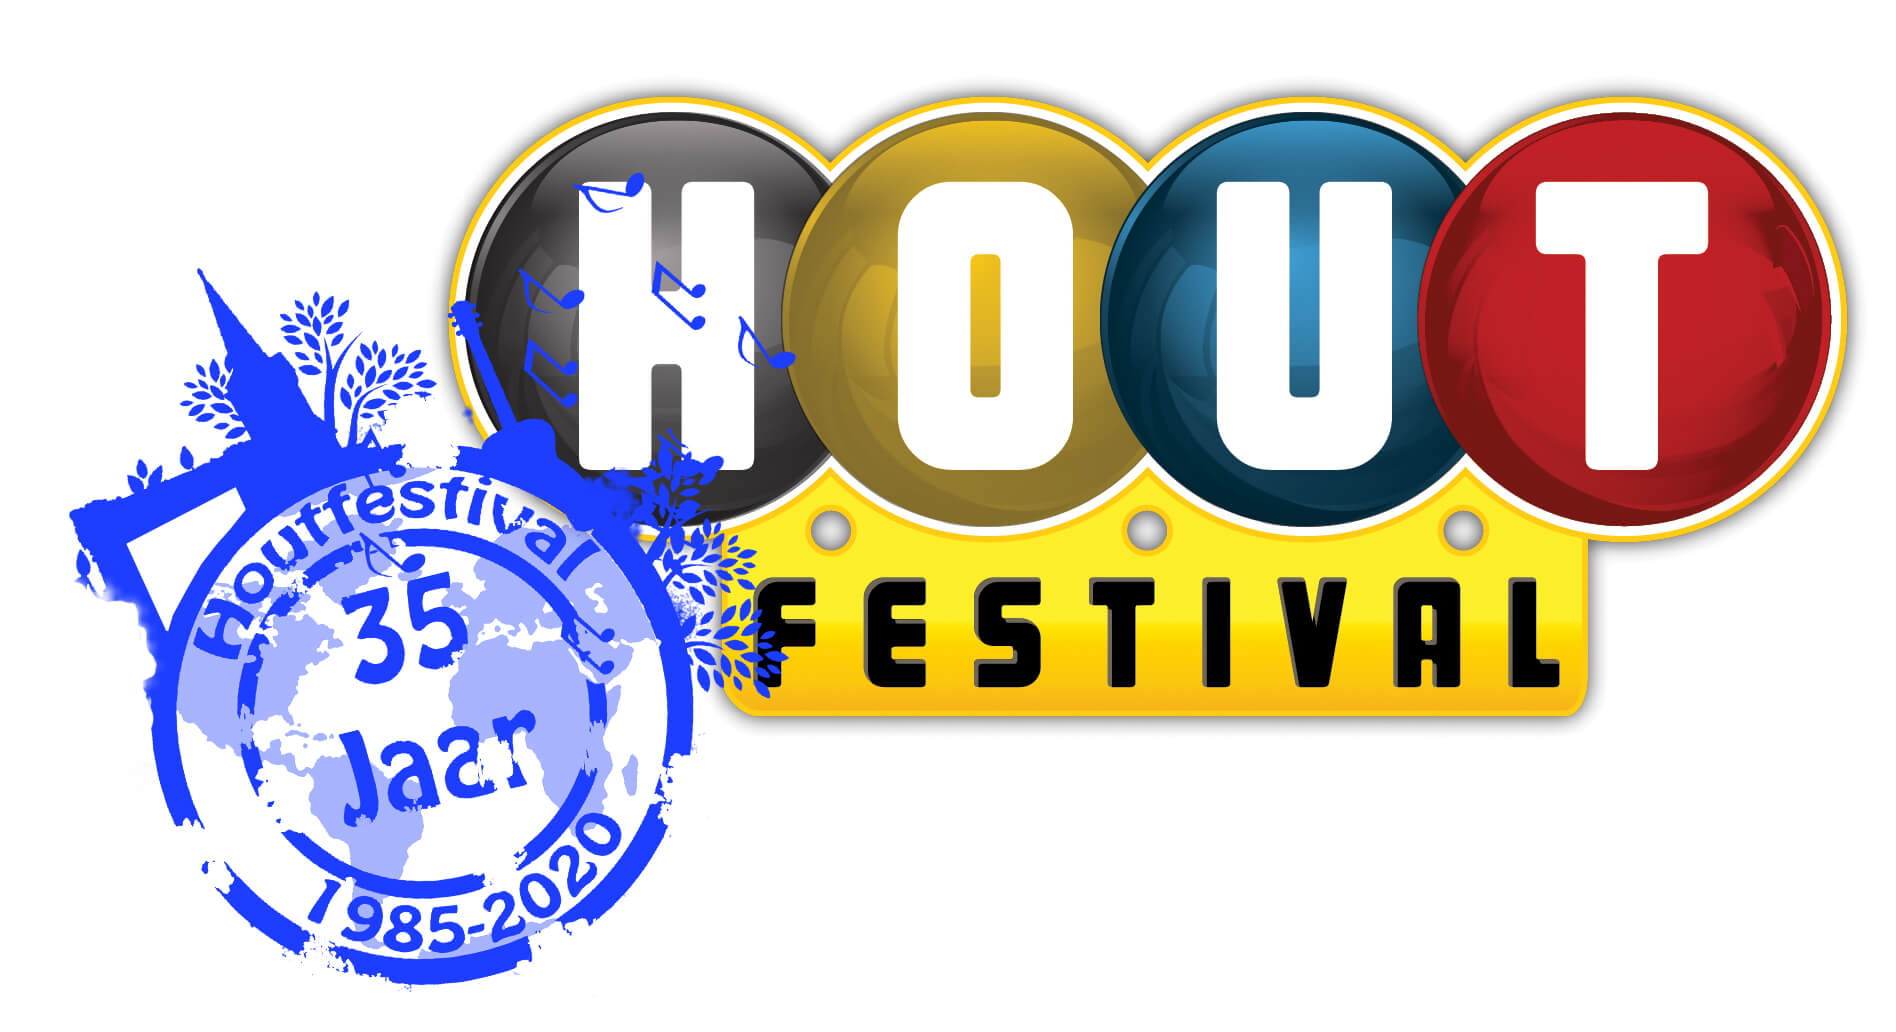 Houtfestival